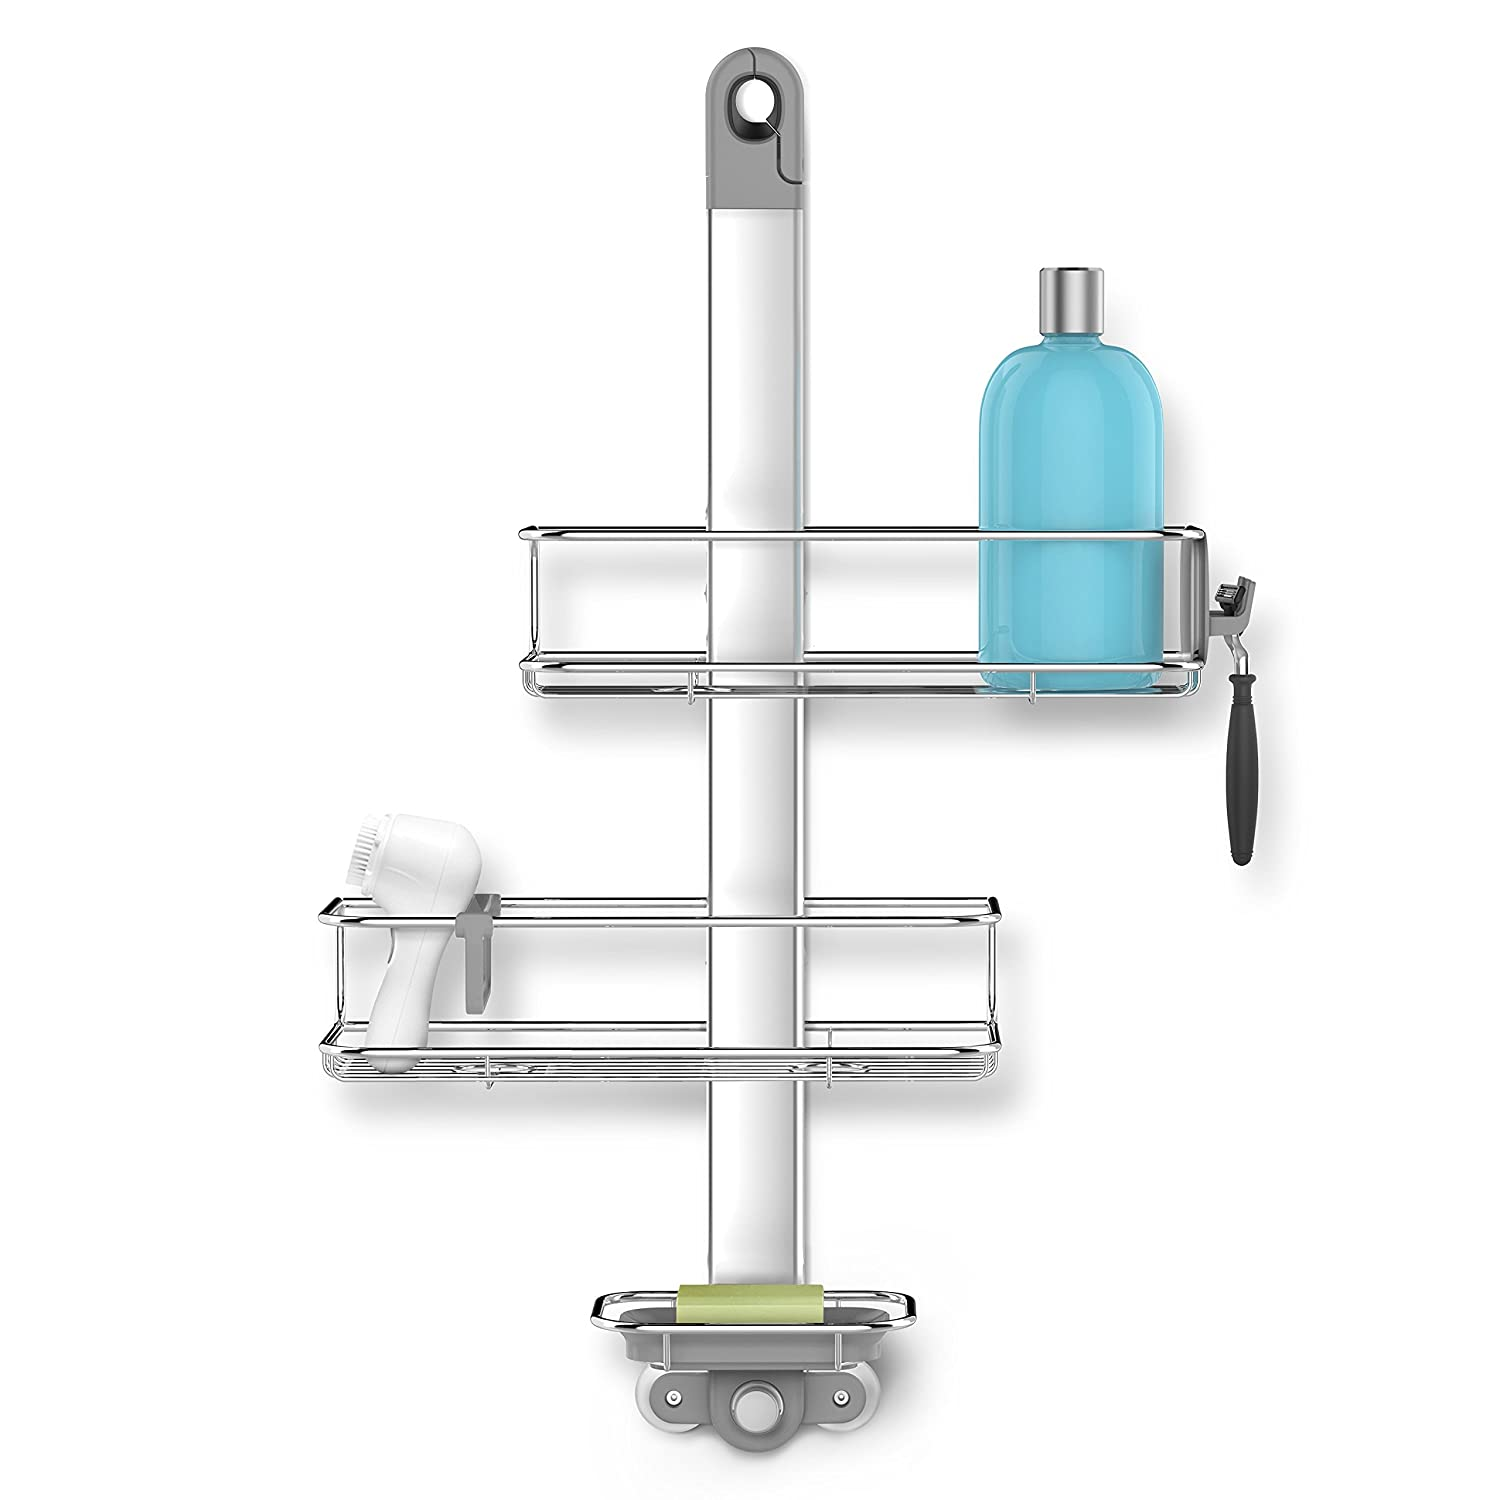 simplehuman Adjustable Shower Caddy, Stainless Steel + Anodized Aluminum BT1098